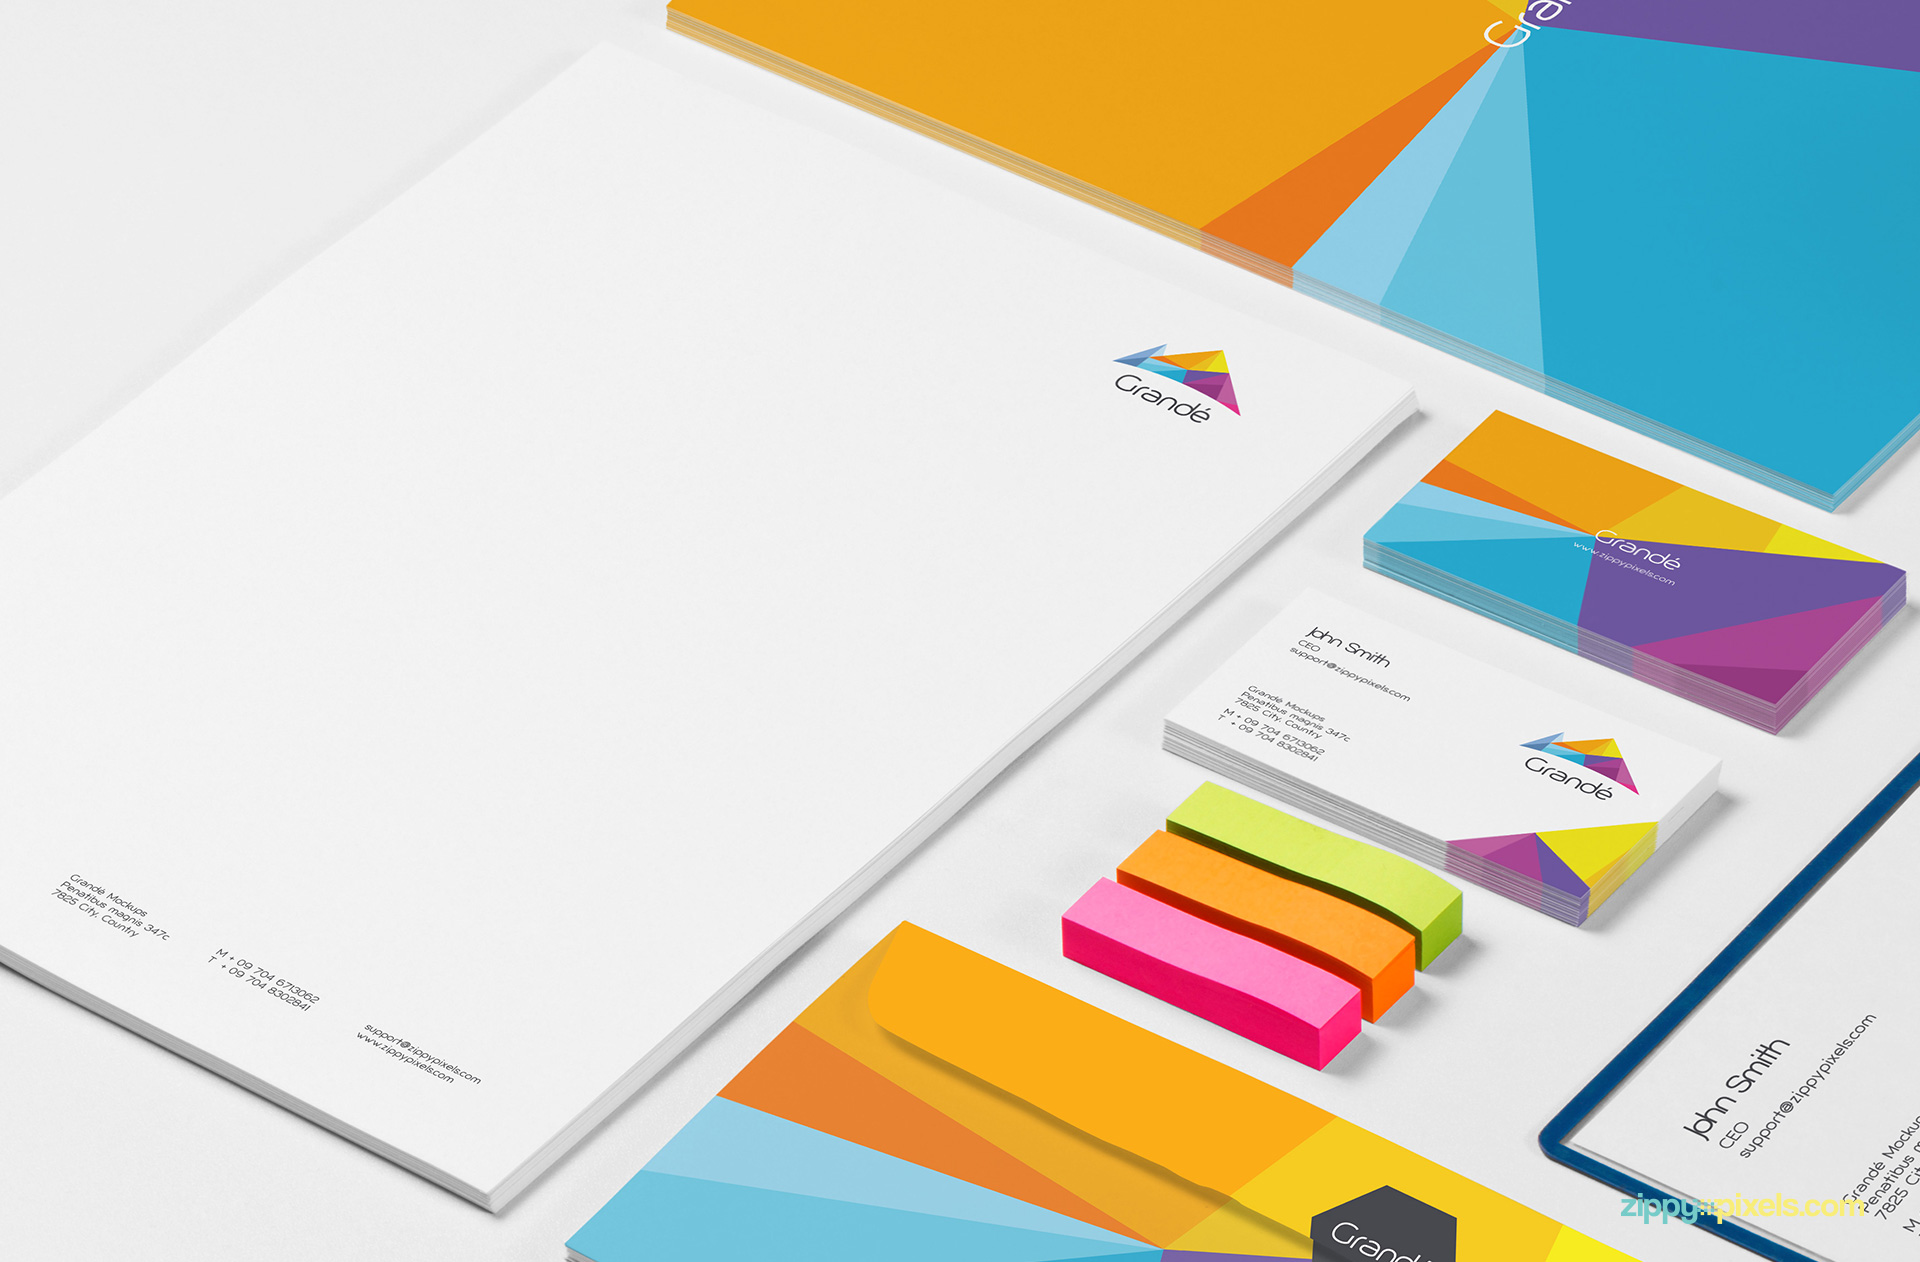 Closeup shot of Letterhead, Business Cards and Envelopes for Corporate Identity Mockup